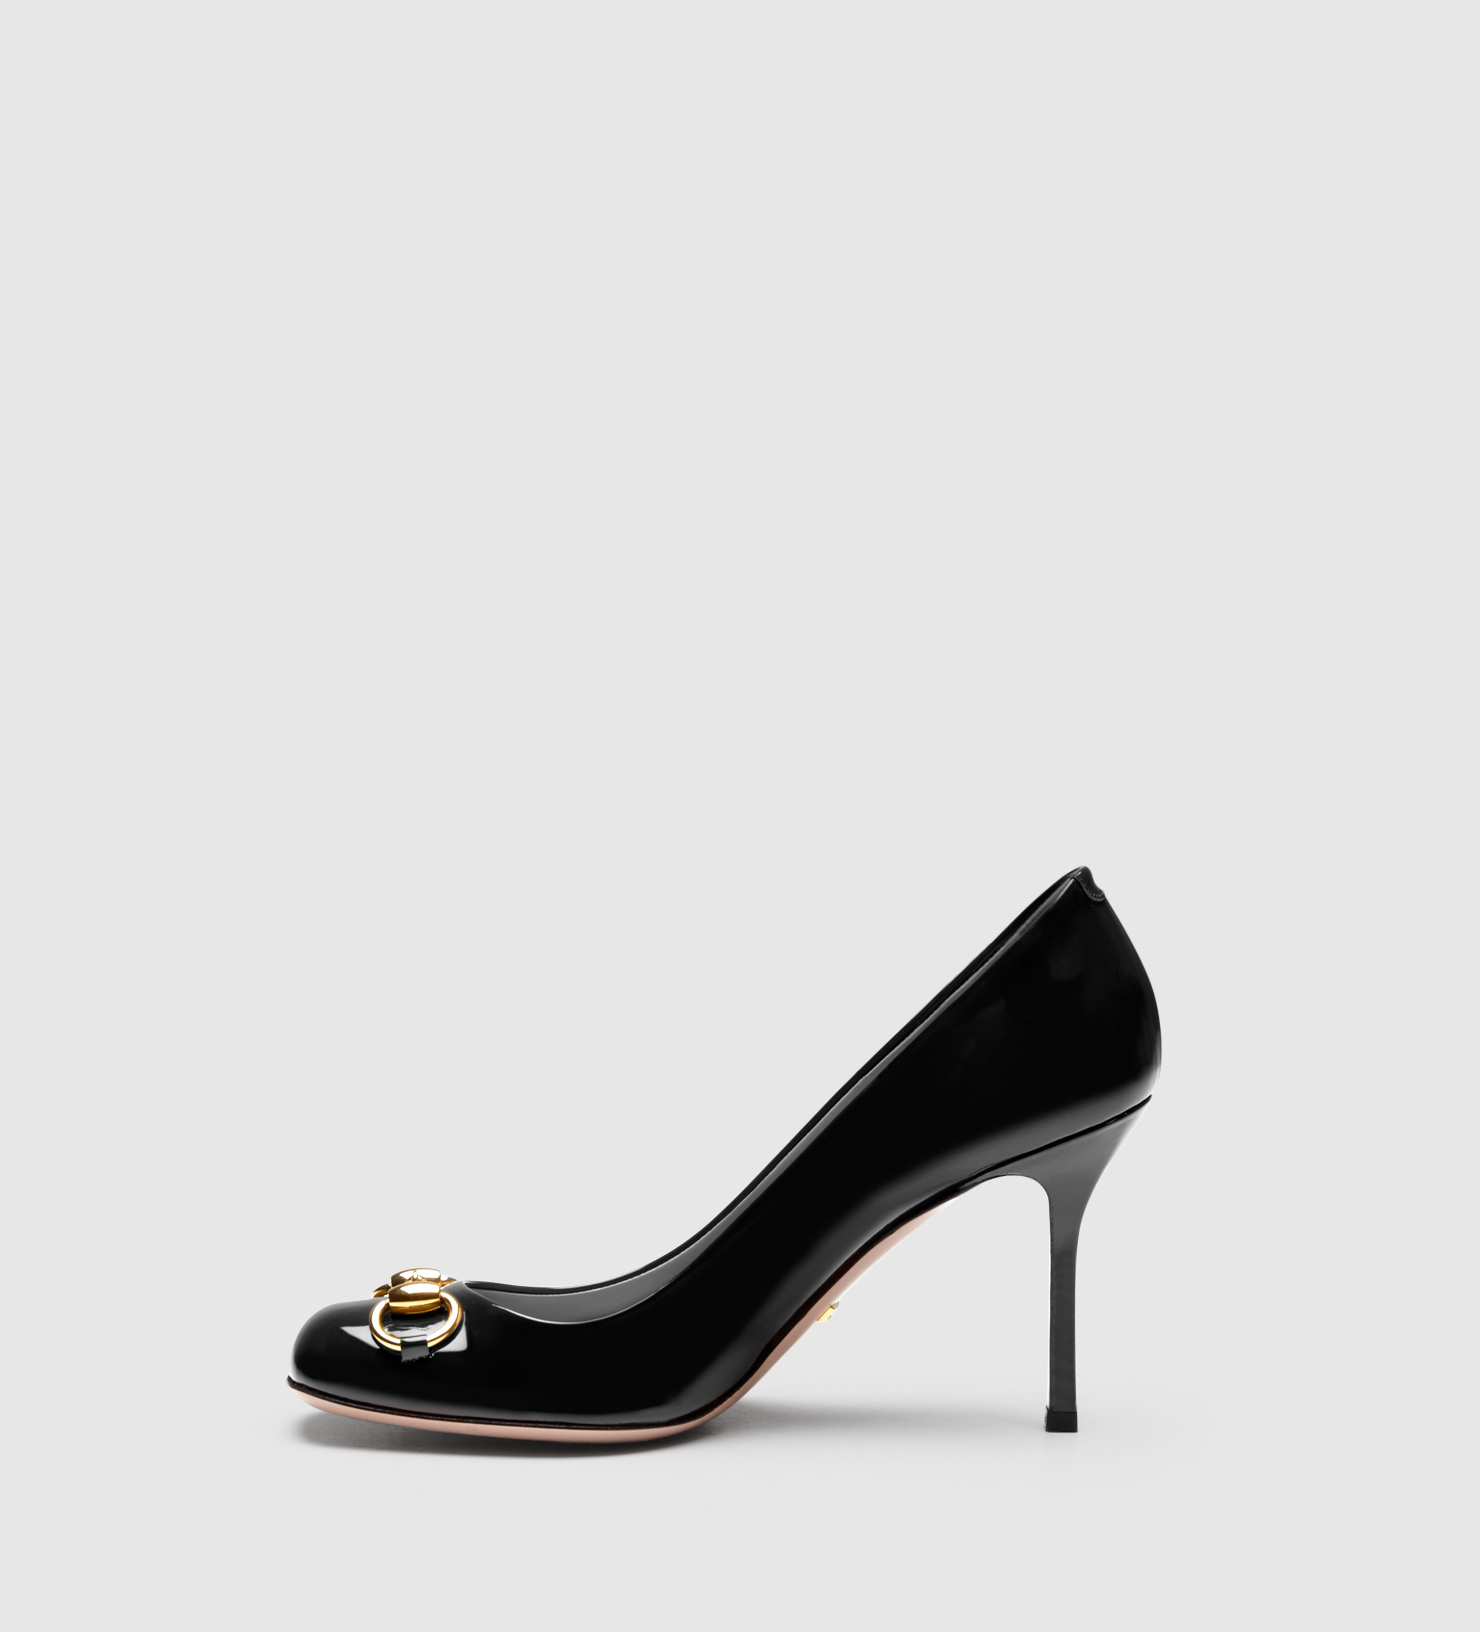 604cec70eed Gucci Jolene Patent Leather Mid-heel Pump in Black - Lyst